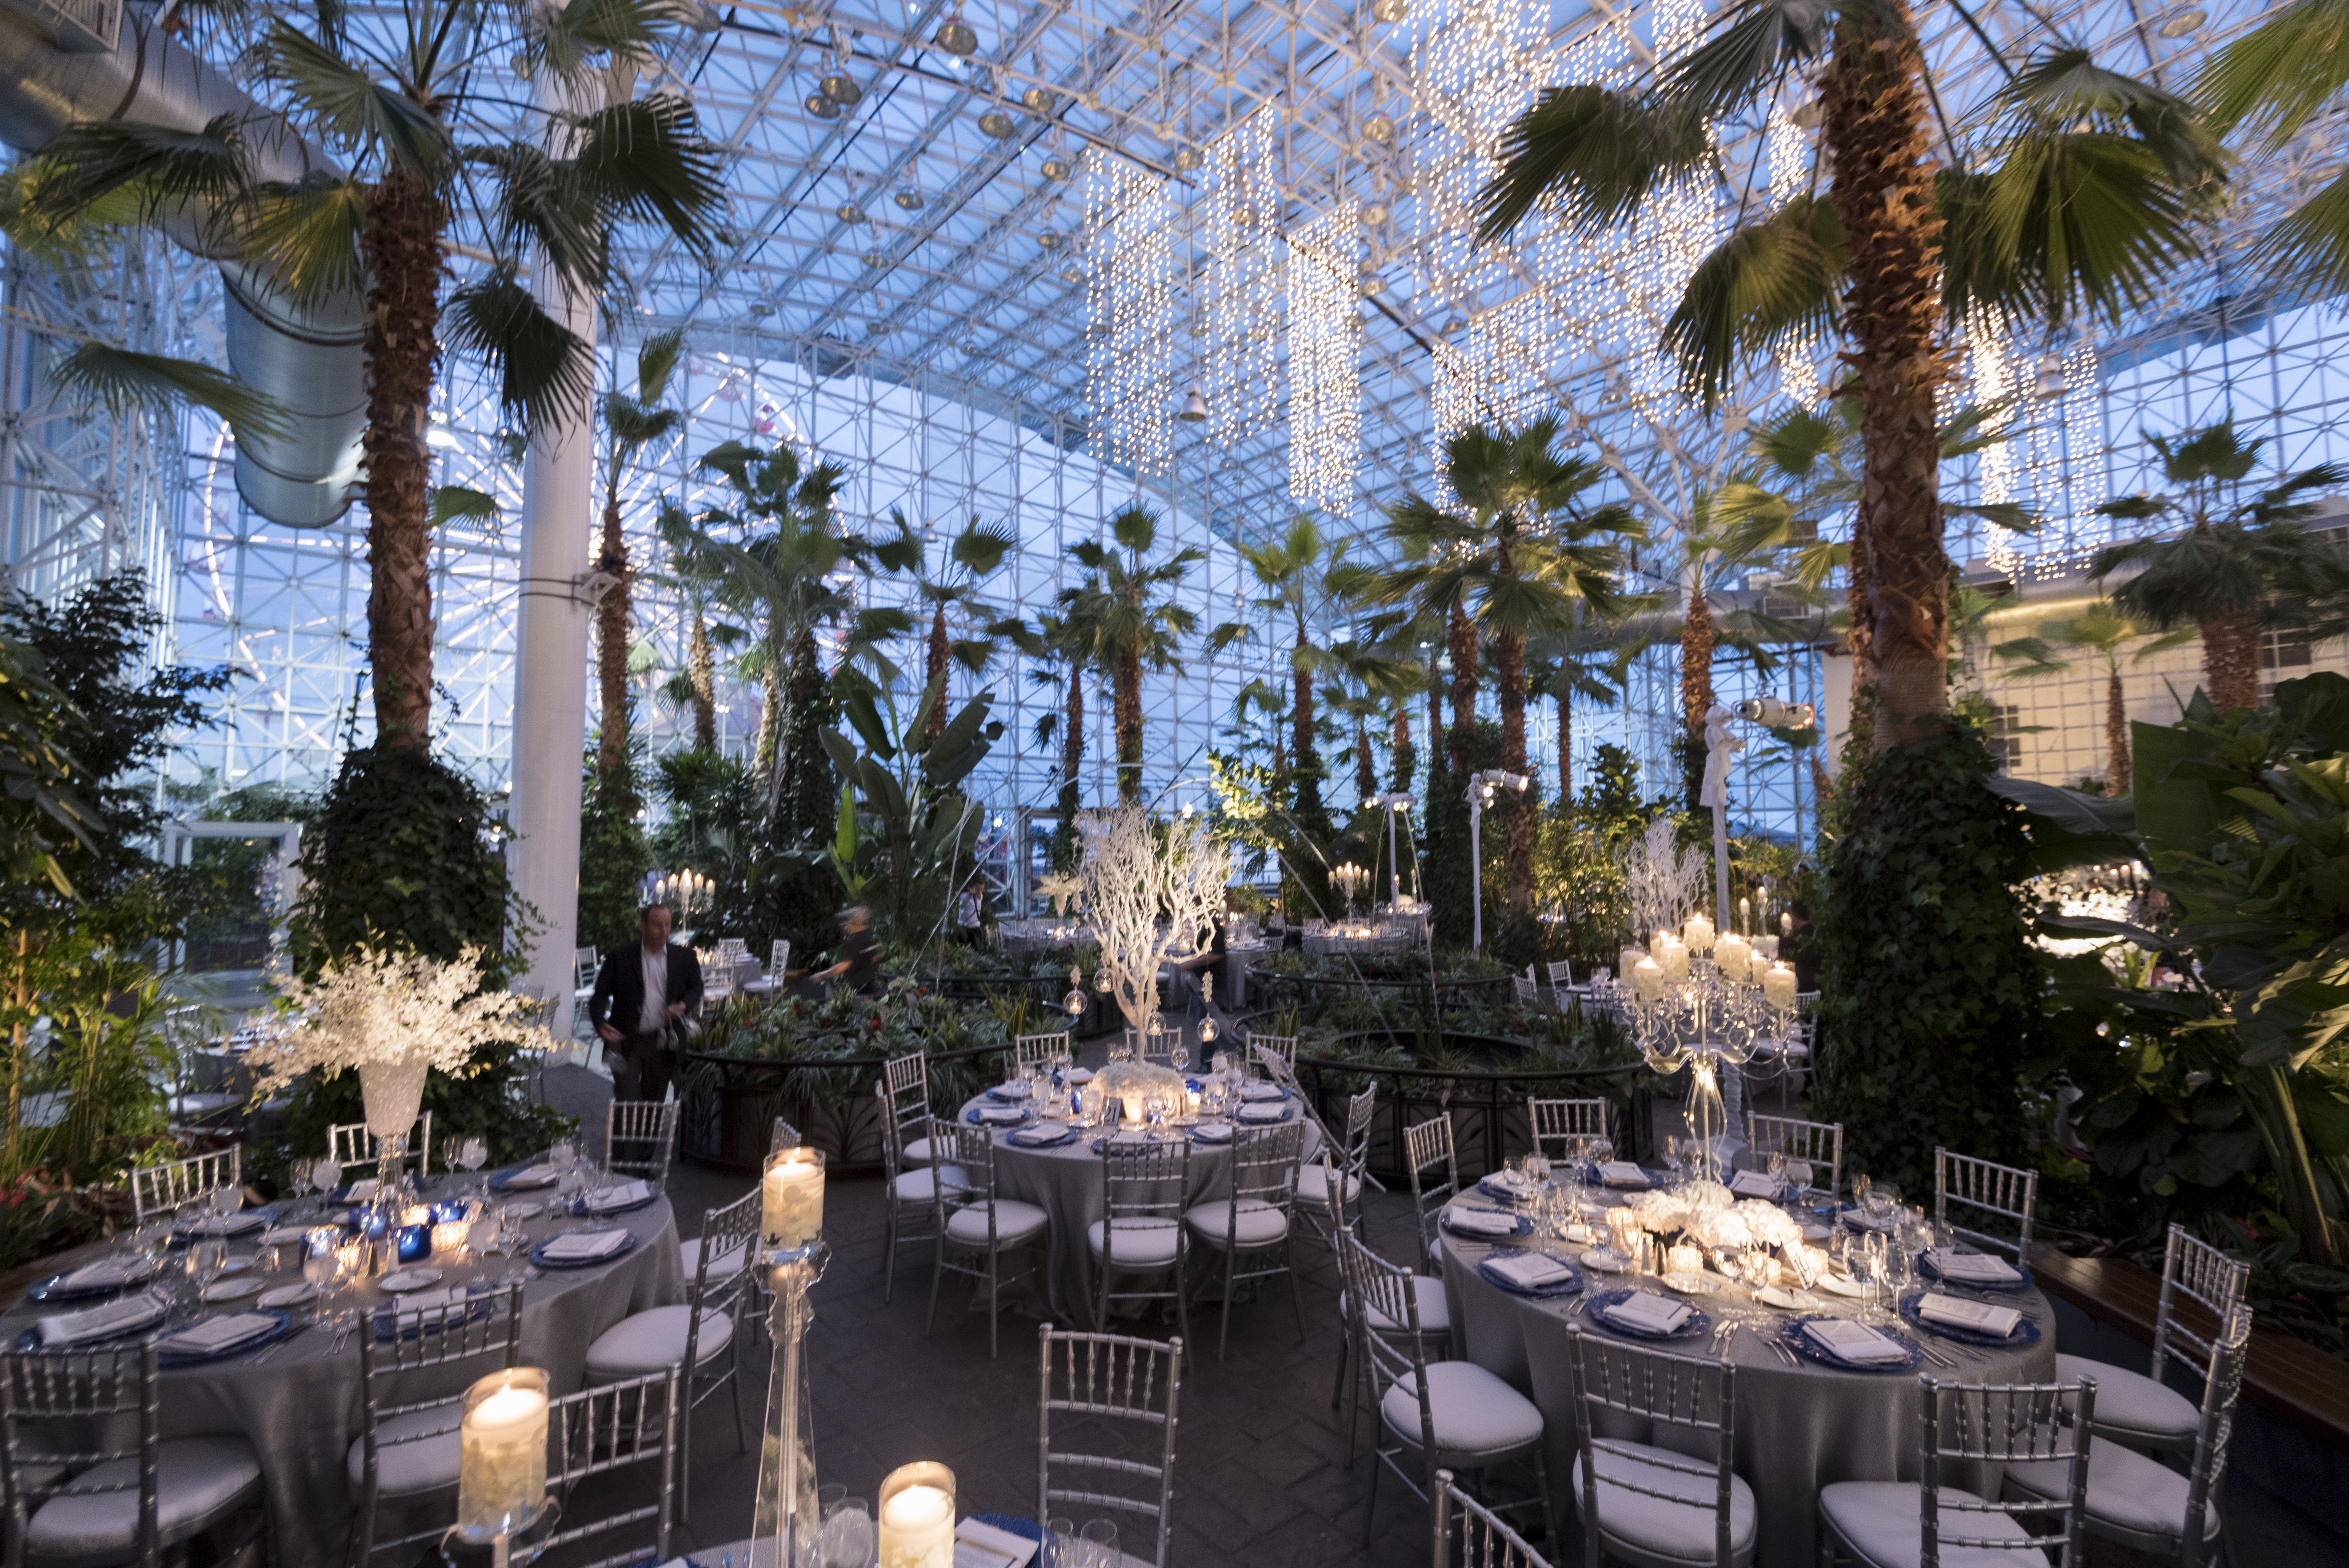 9b93c932bfe3acecc34d8478e4bbaa84 - The Crystal Gardens At Navy Pier Wedding